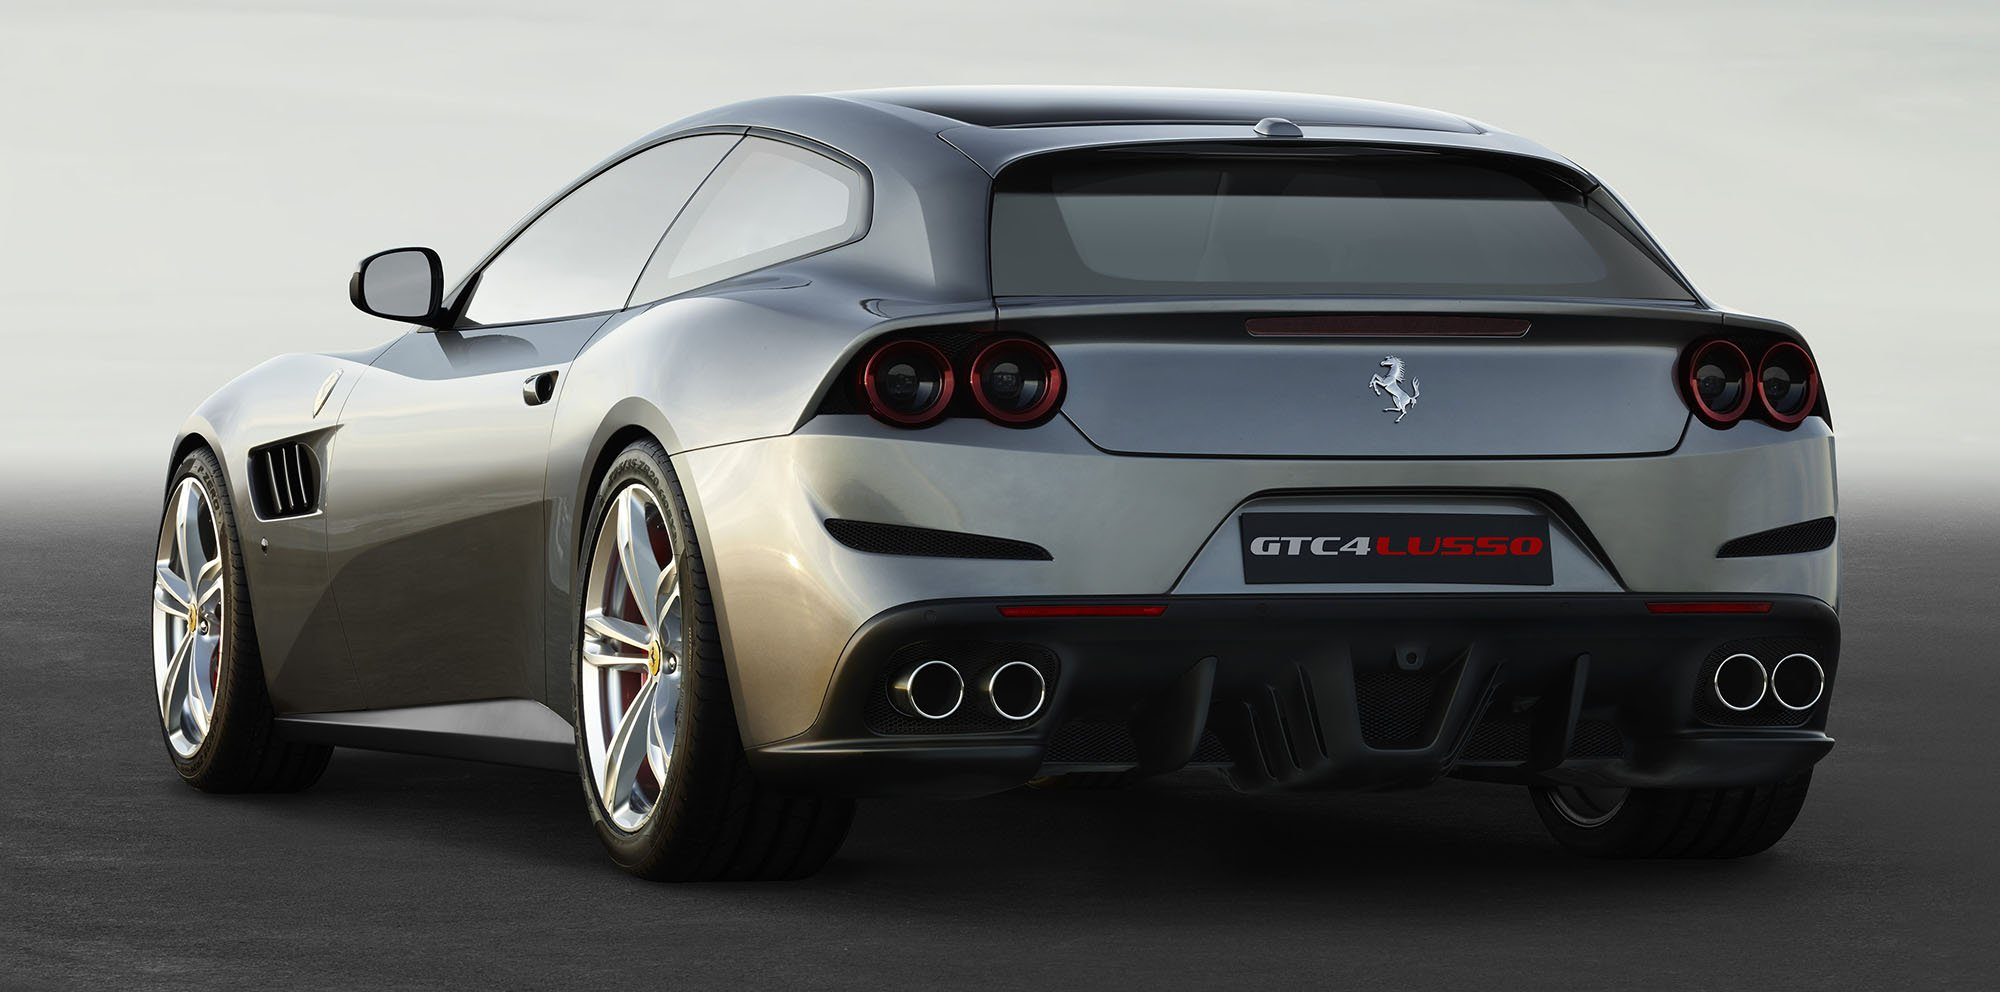 ferrari gtc4 lusso unveiled ff given comprehensive makeover updated photos 1 of 9. Black Bedroom Furniture Sets. Home Design Ideas